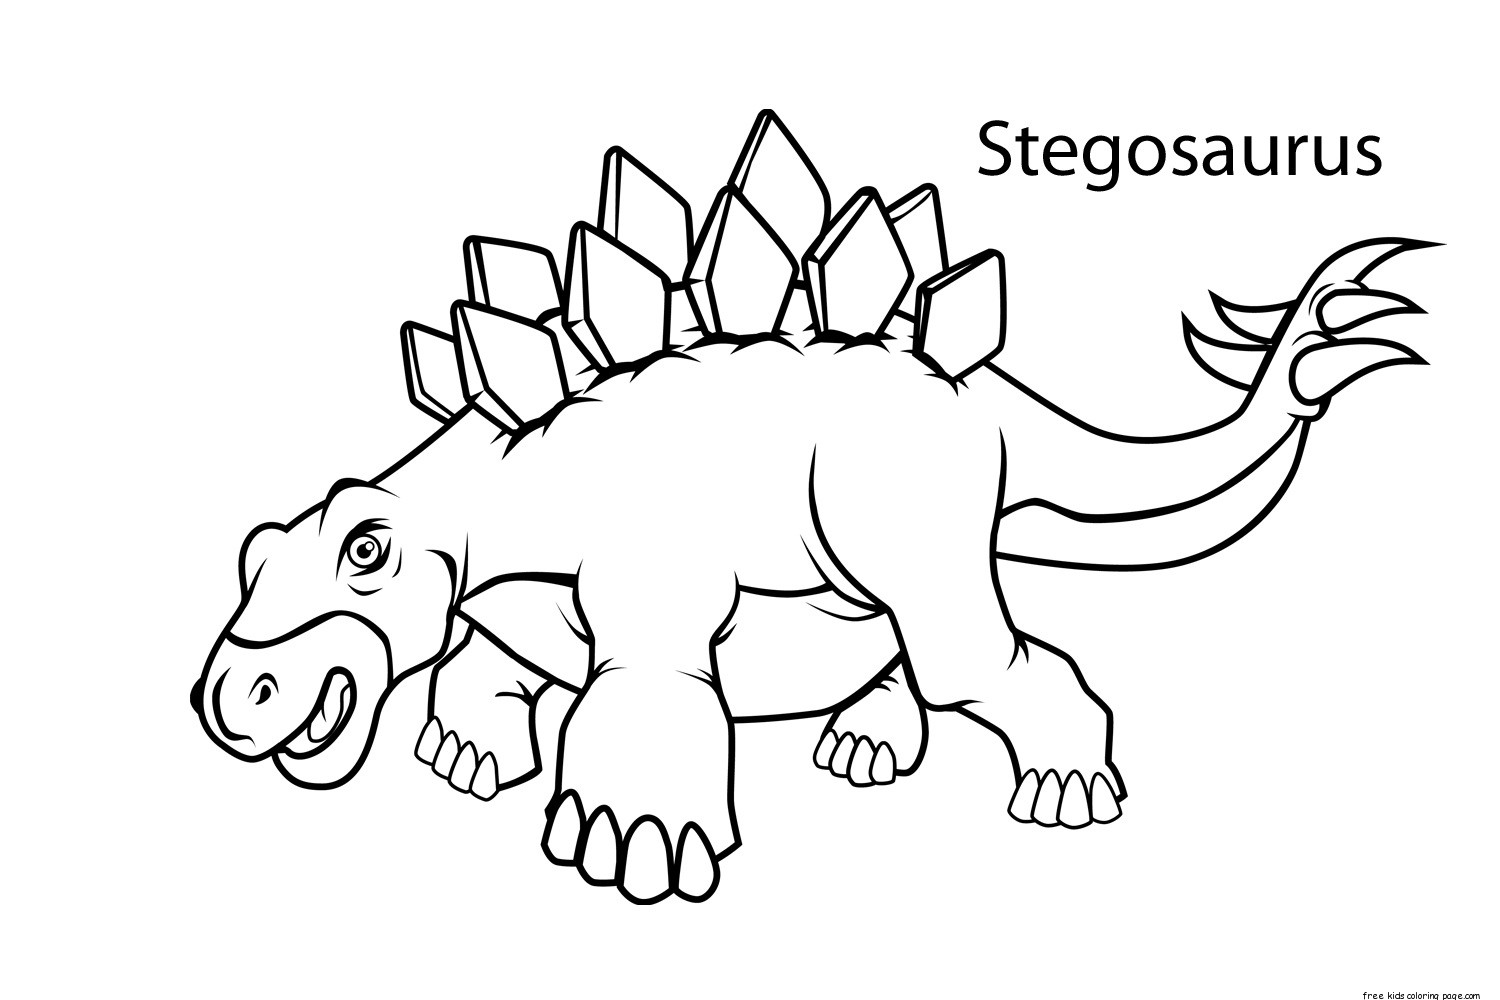 dinosaur print out coloring pages coloring pages dinosaur free printable coloring pages coloring print dinosaur pages out